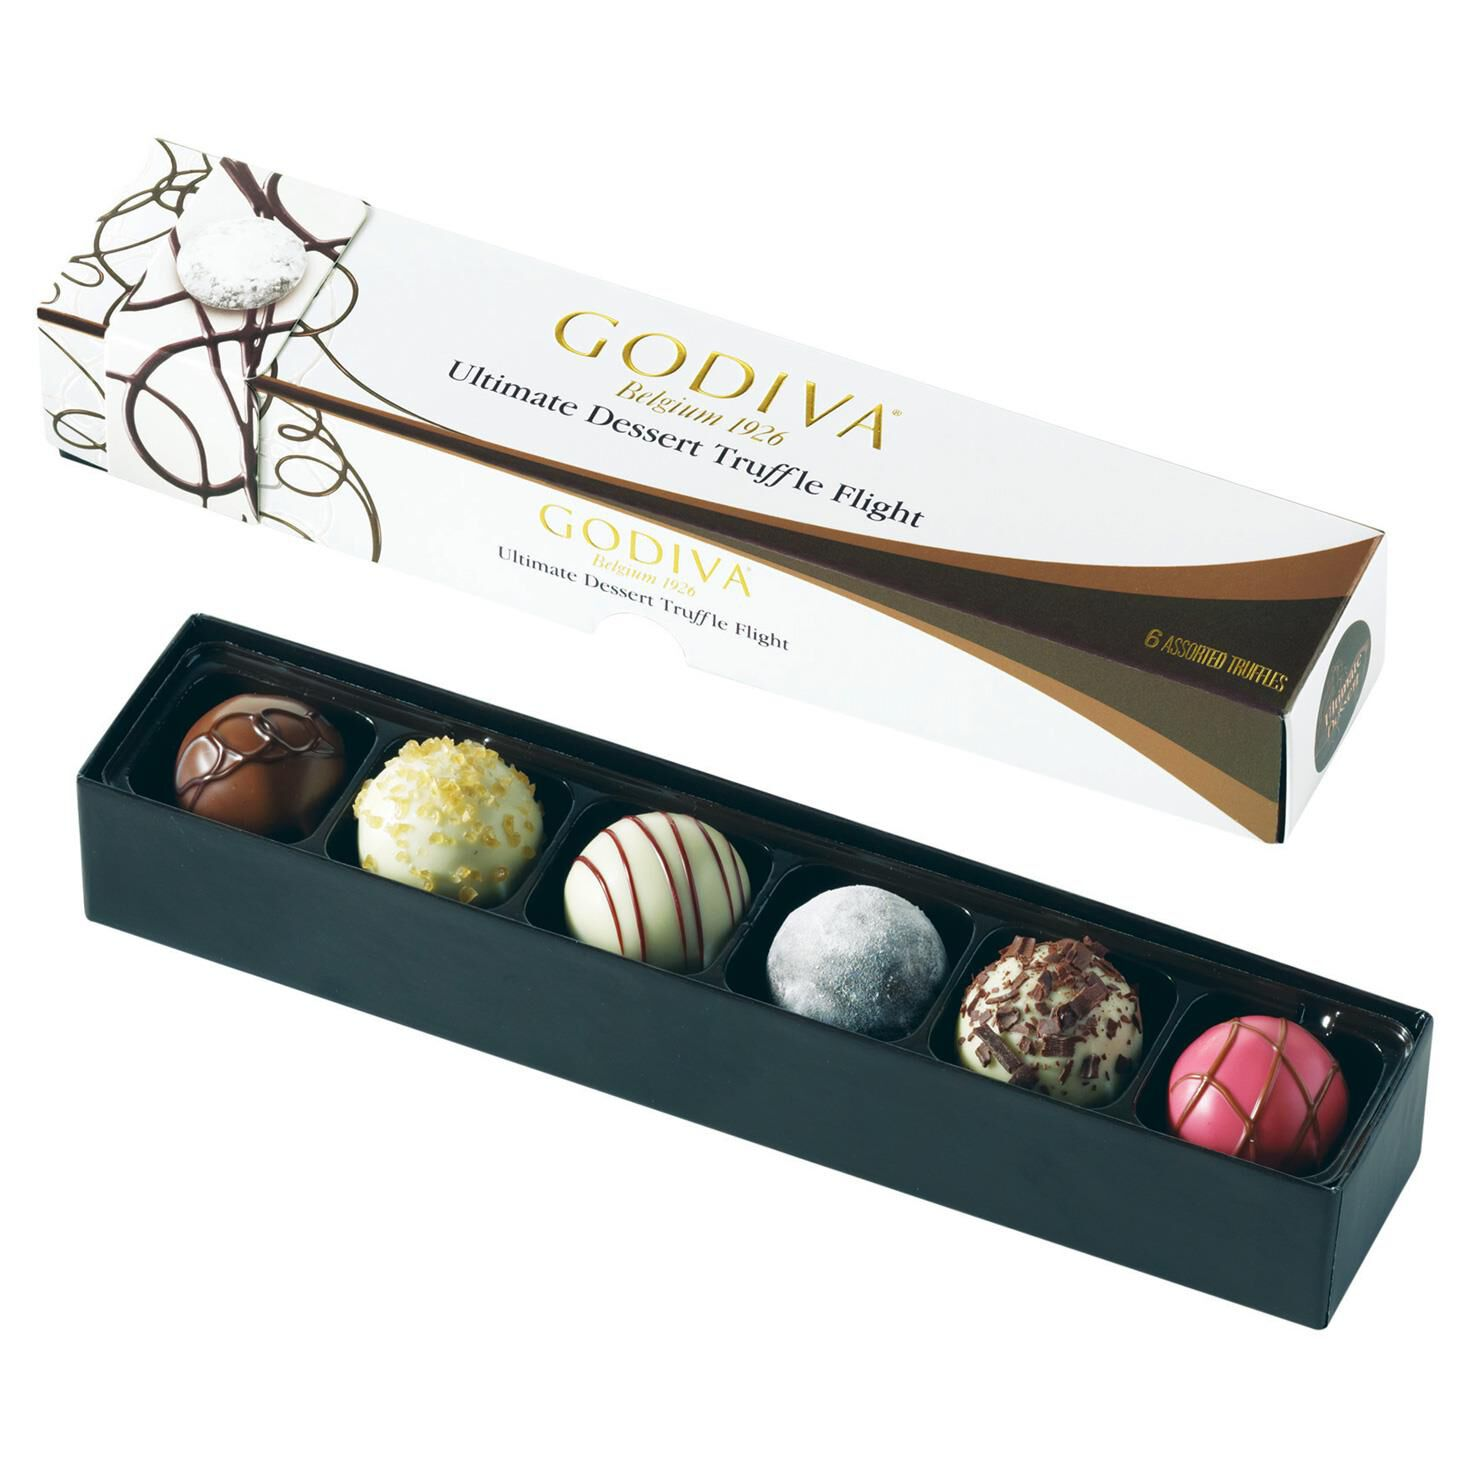 Godiva Chocolatier Ultimate Dessert Truffle Flight in Box, 6 ...